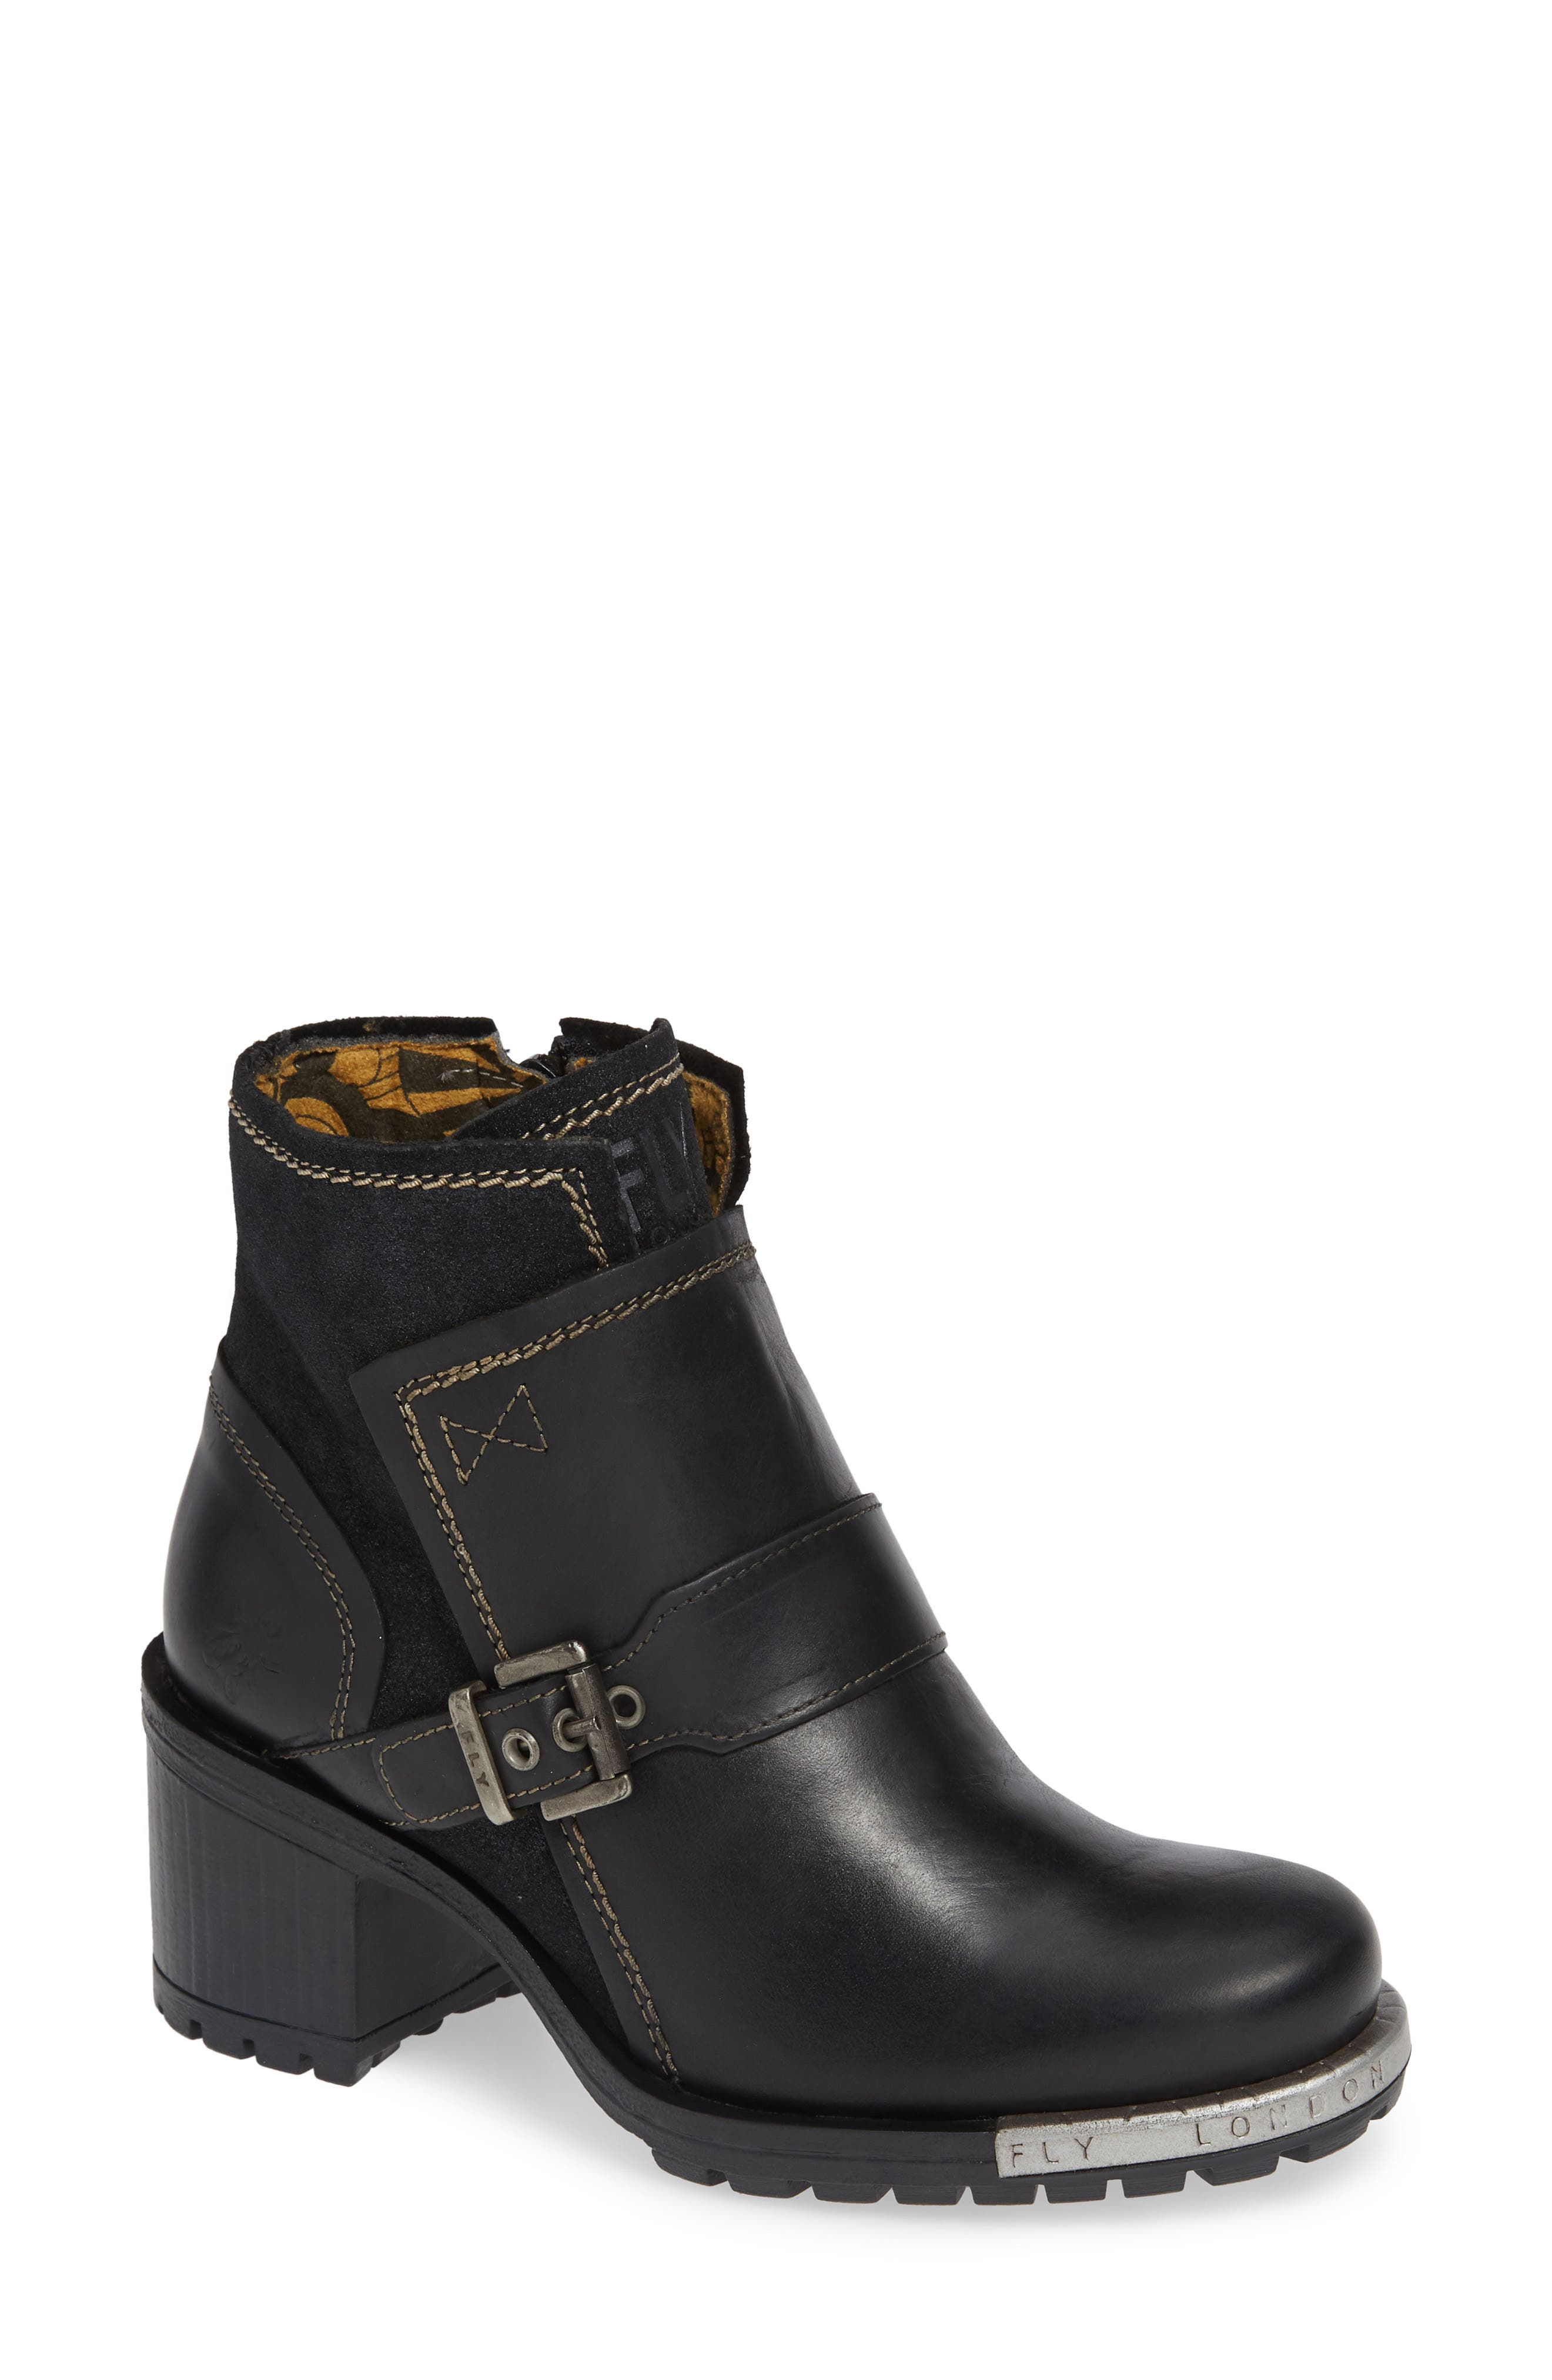 Fly London Labe Bootie, Black